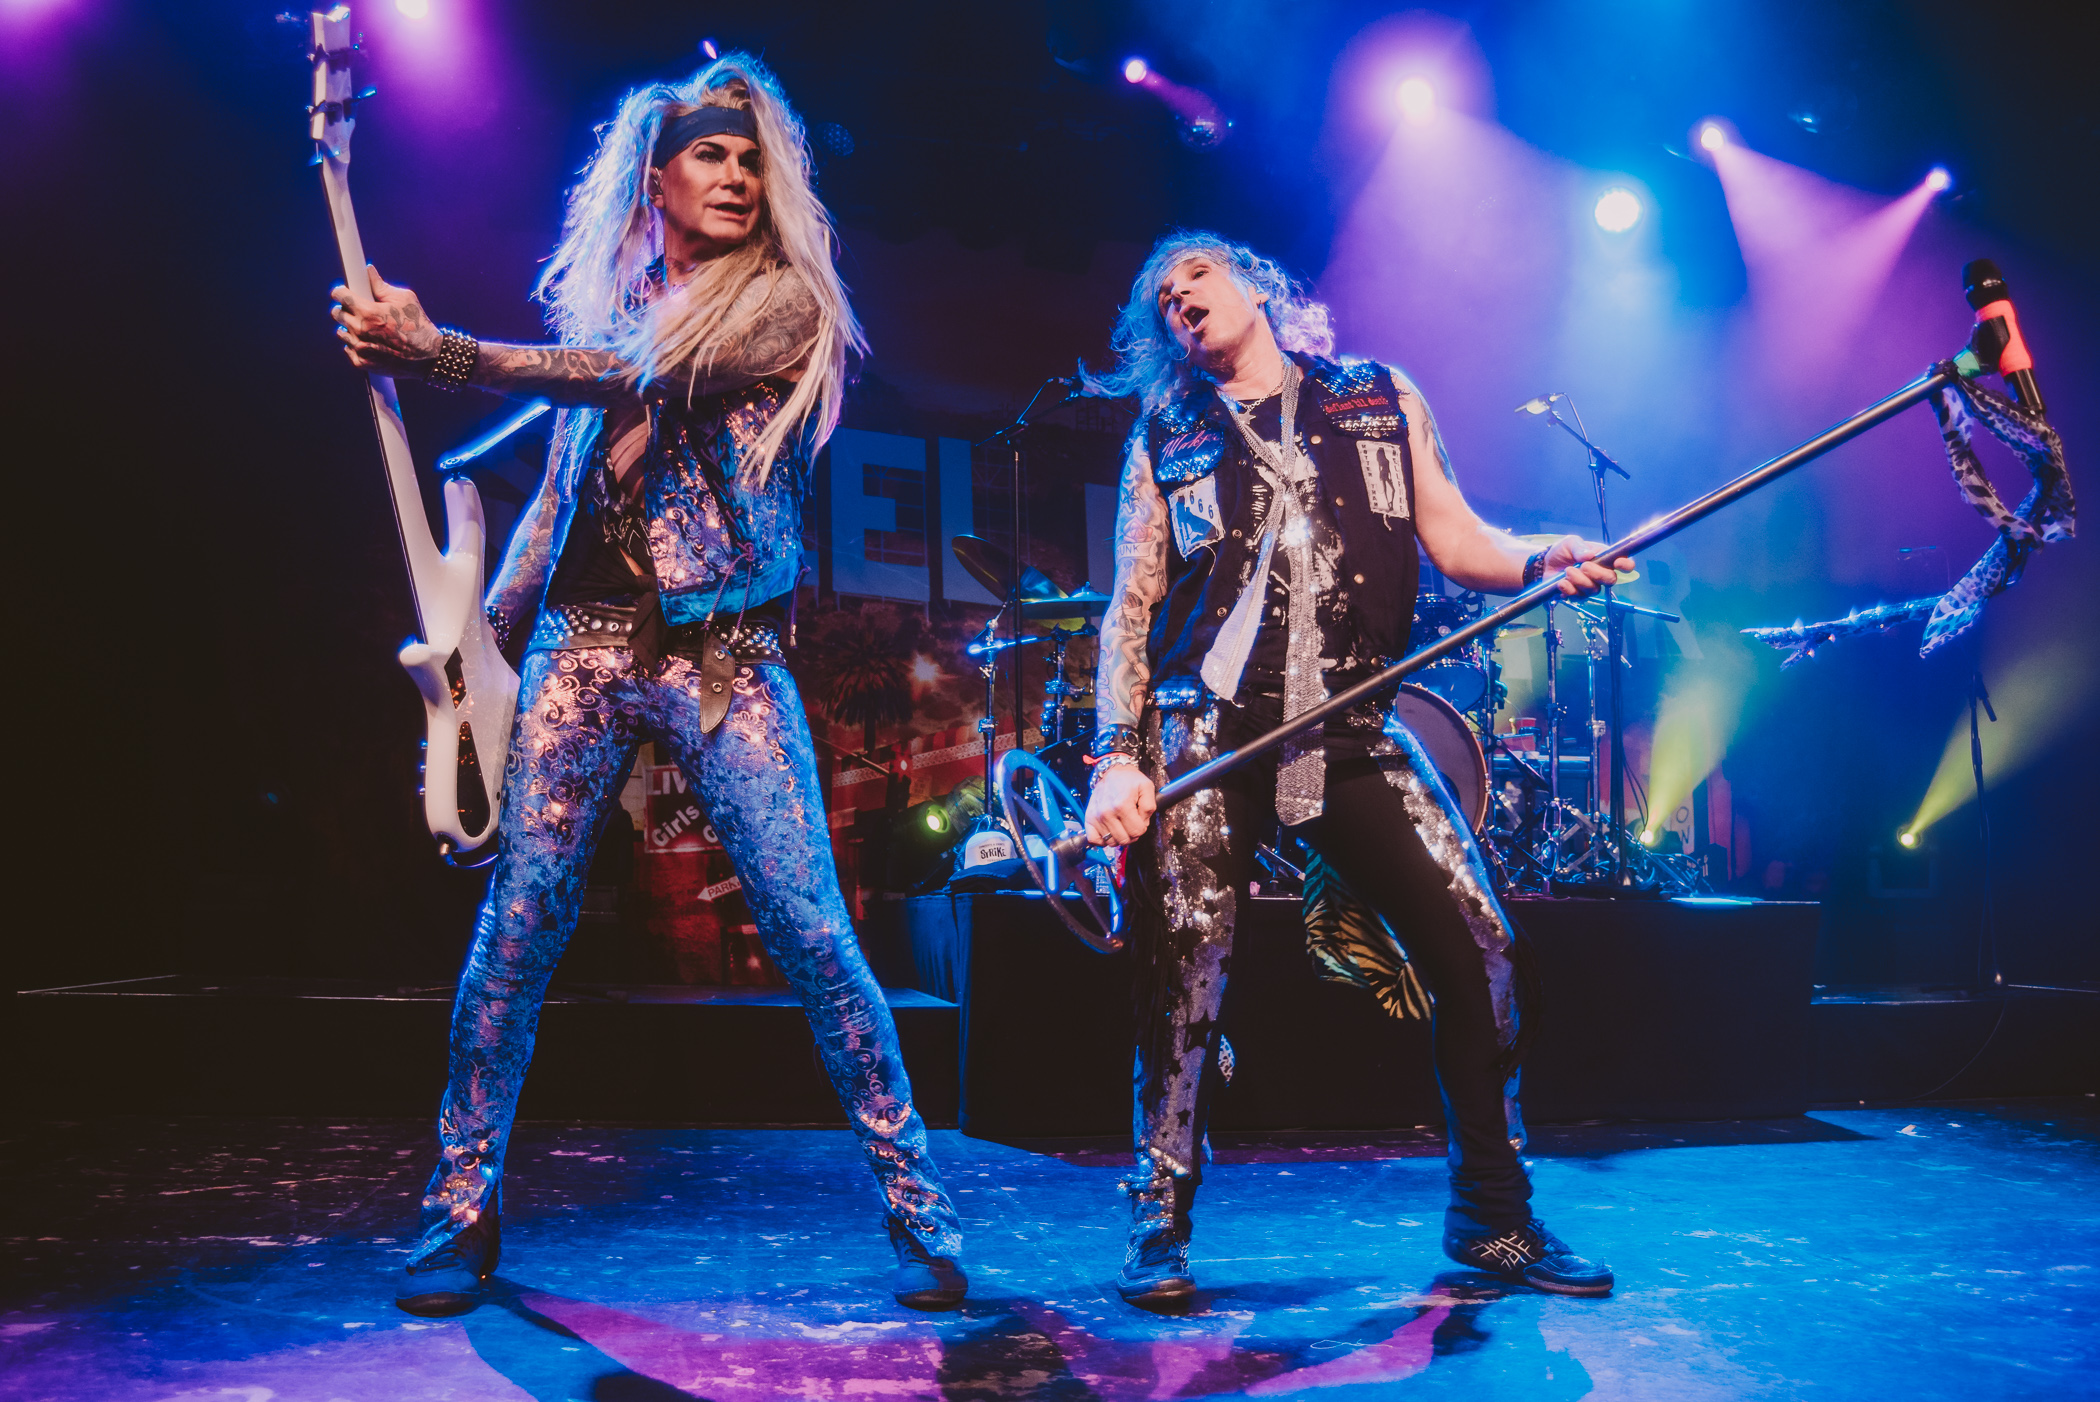 1_Steel_Panther-Commodore-Ballroom-Timothy_Nguyen-20190411 (19 of 21).JPG